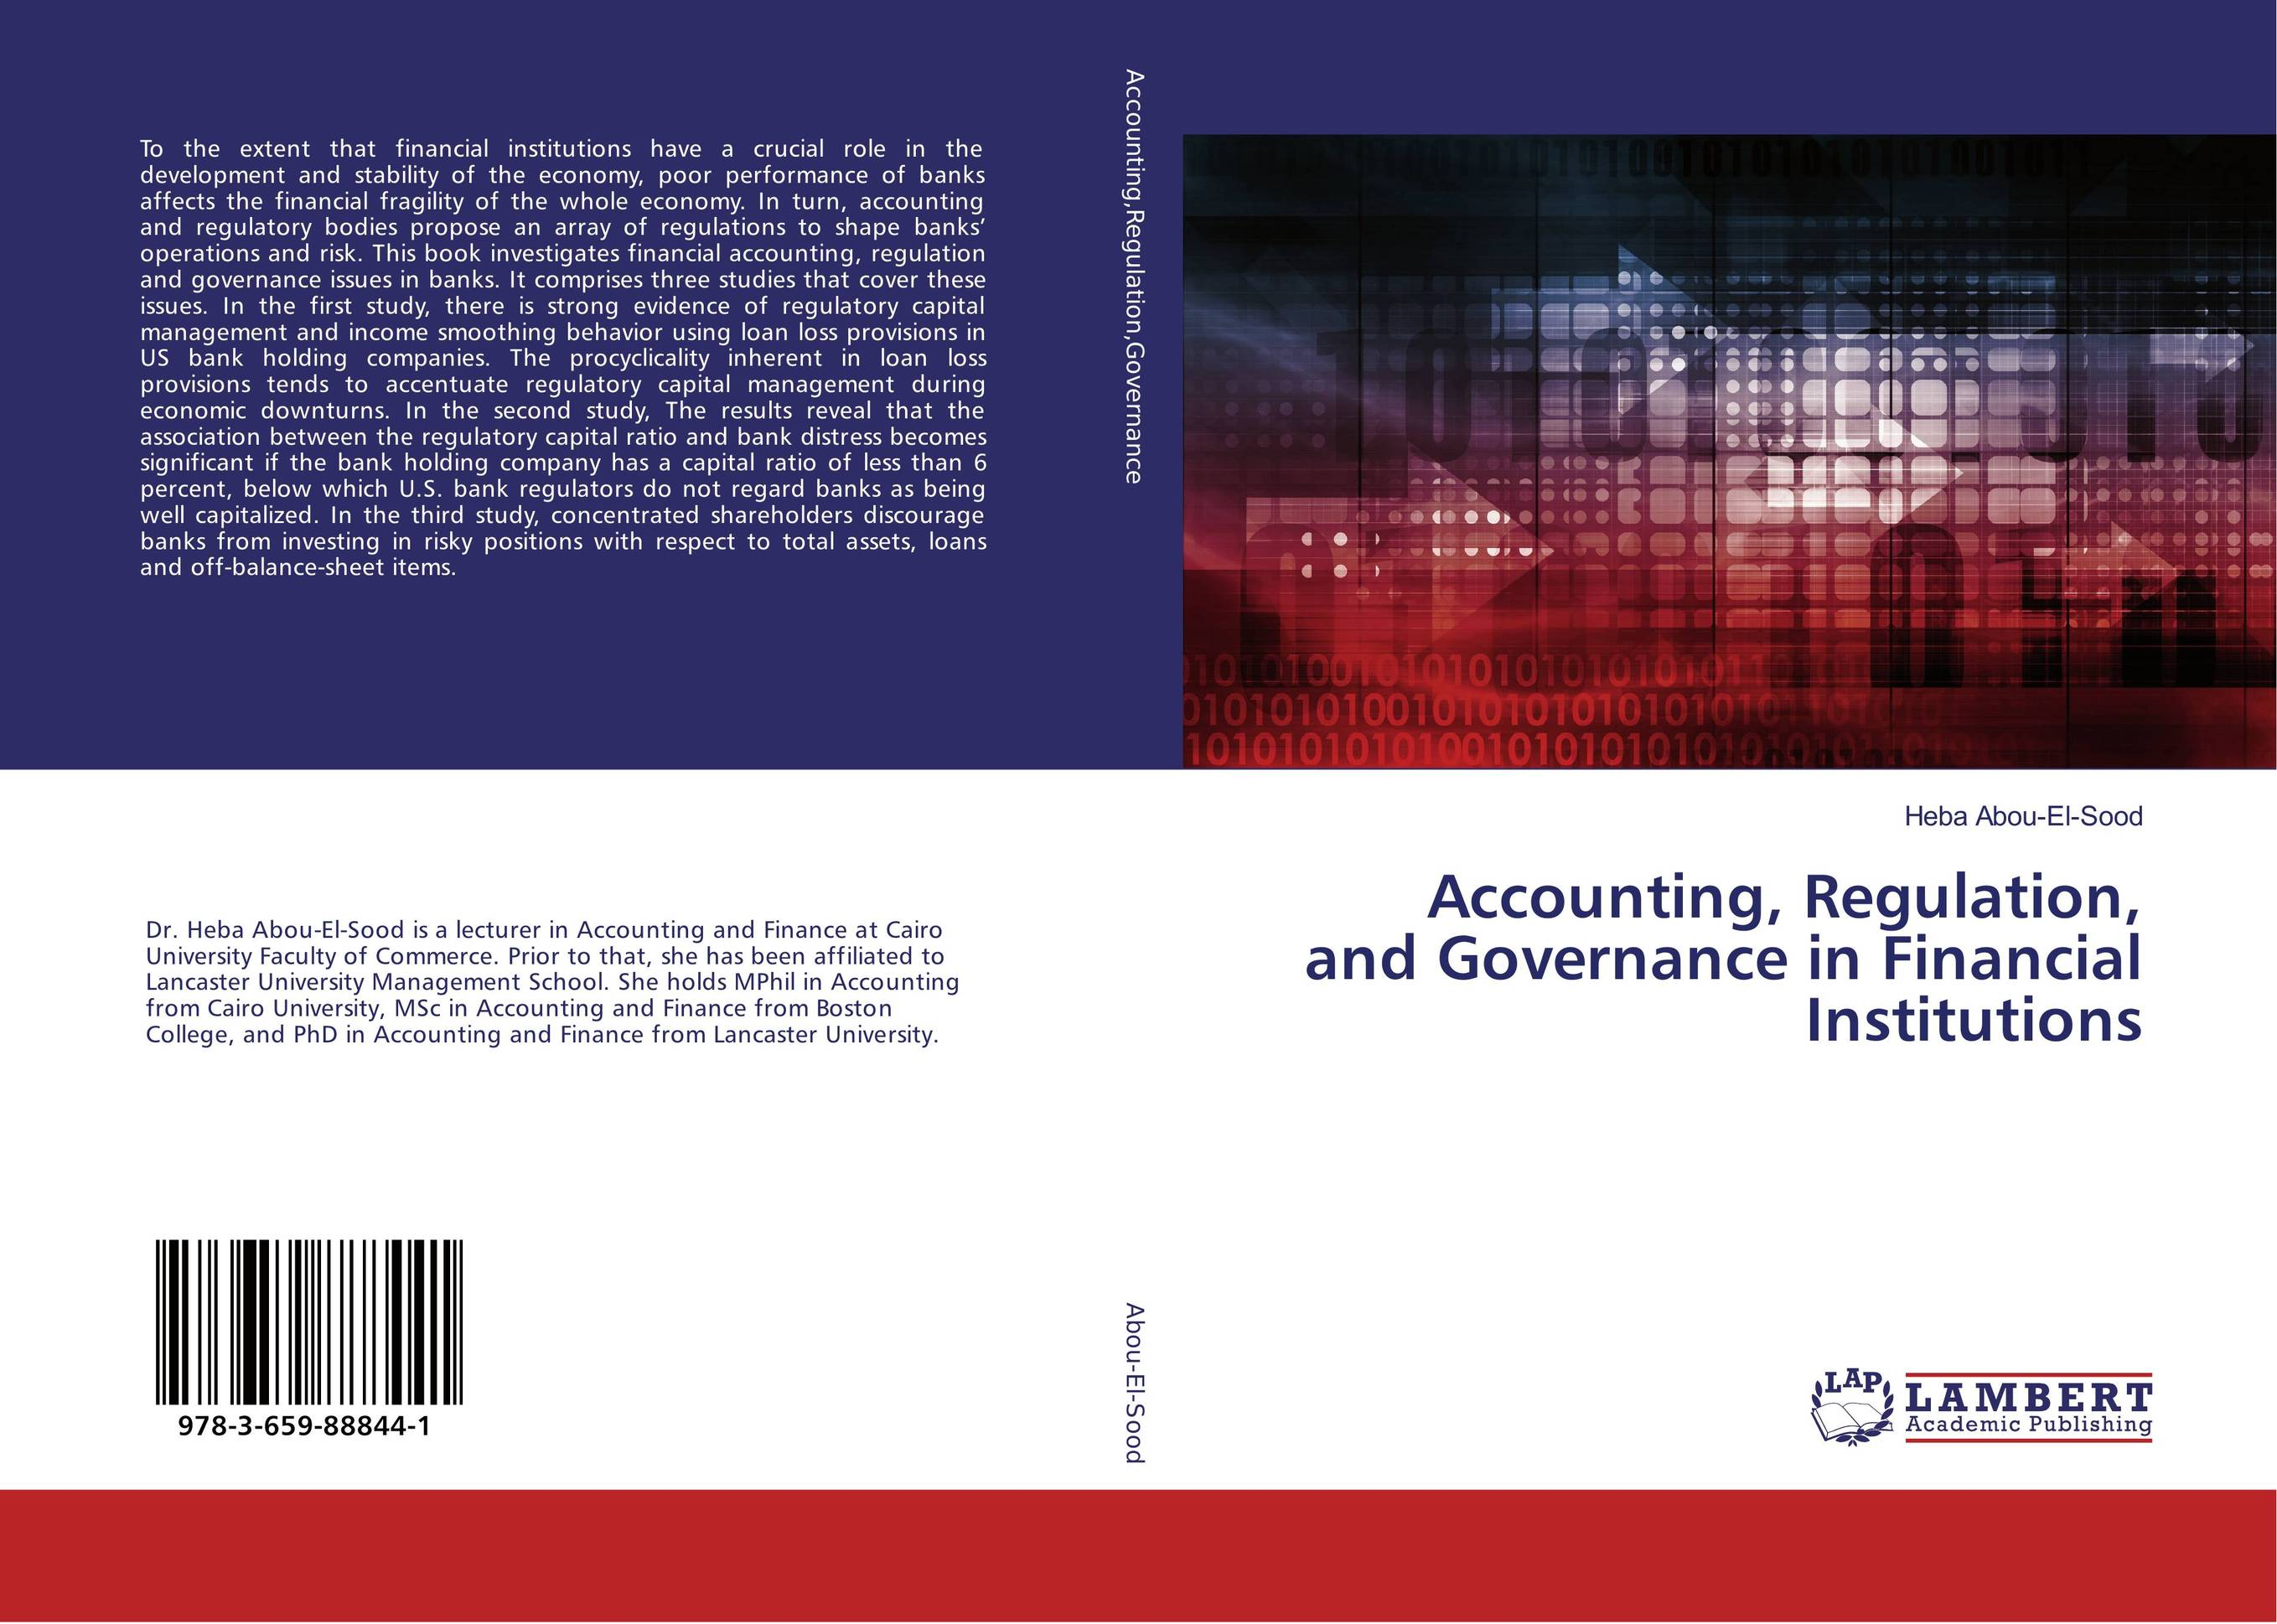 Accounting, Regulation, and Governance in Financial Institutions dysfunctions in accounting and the role of corporate lobbying